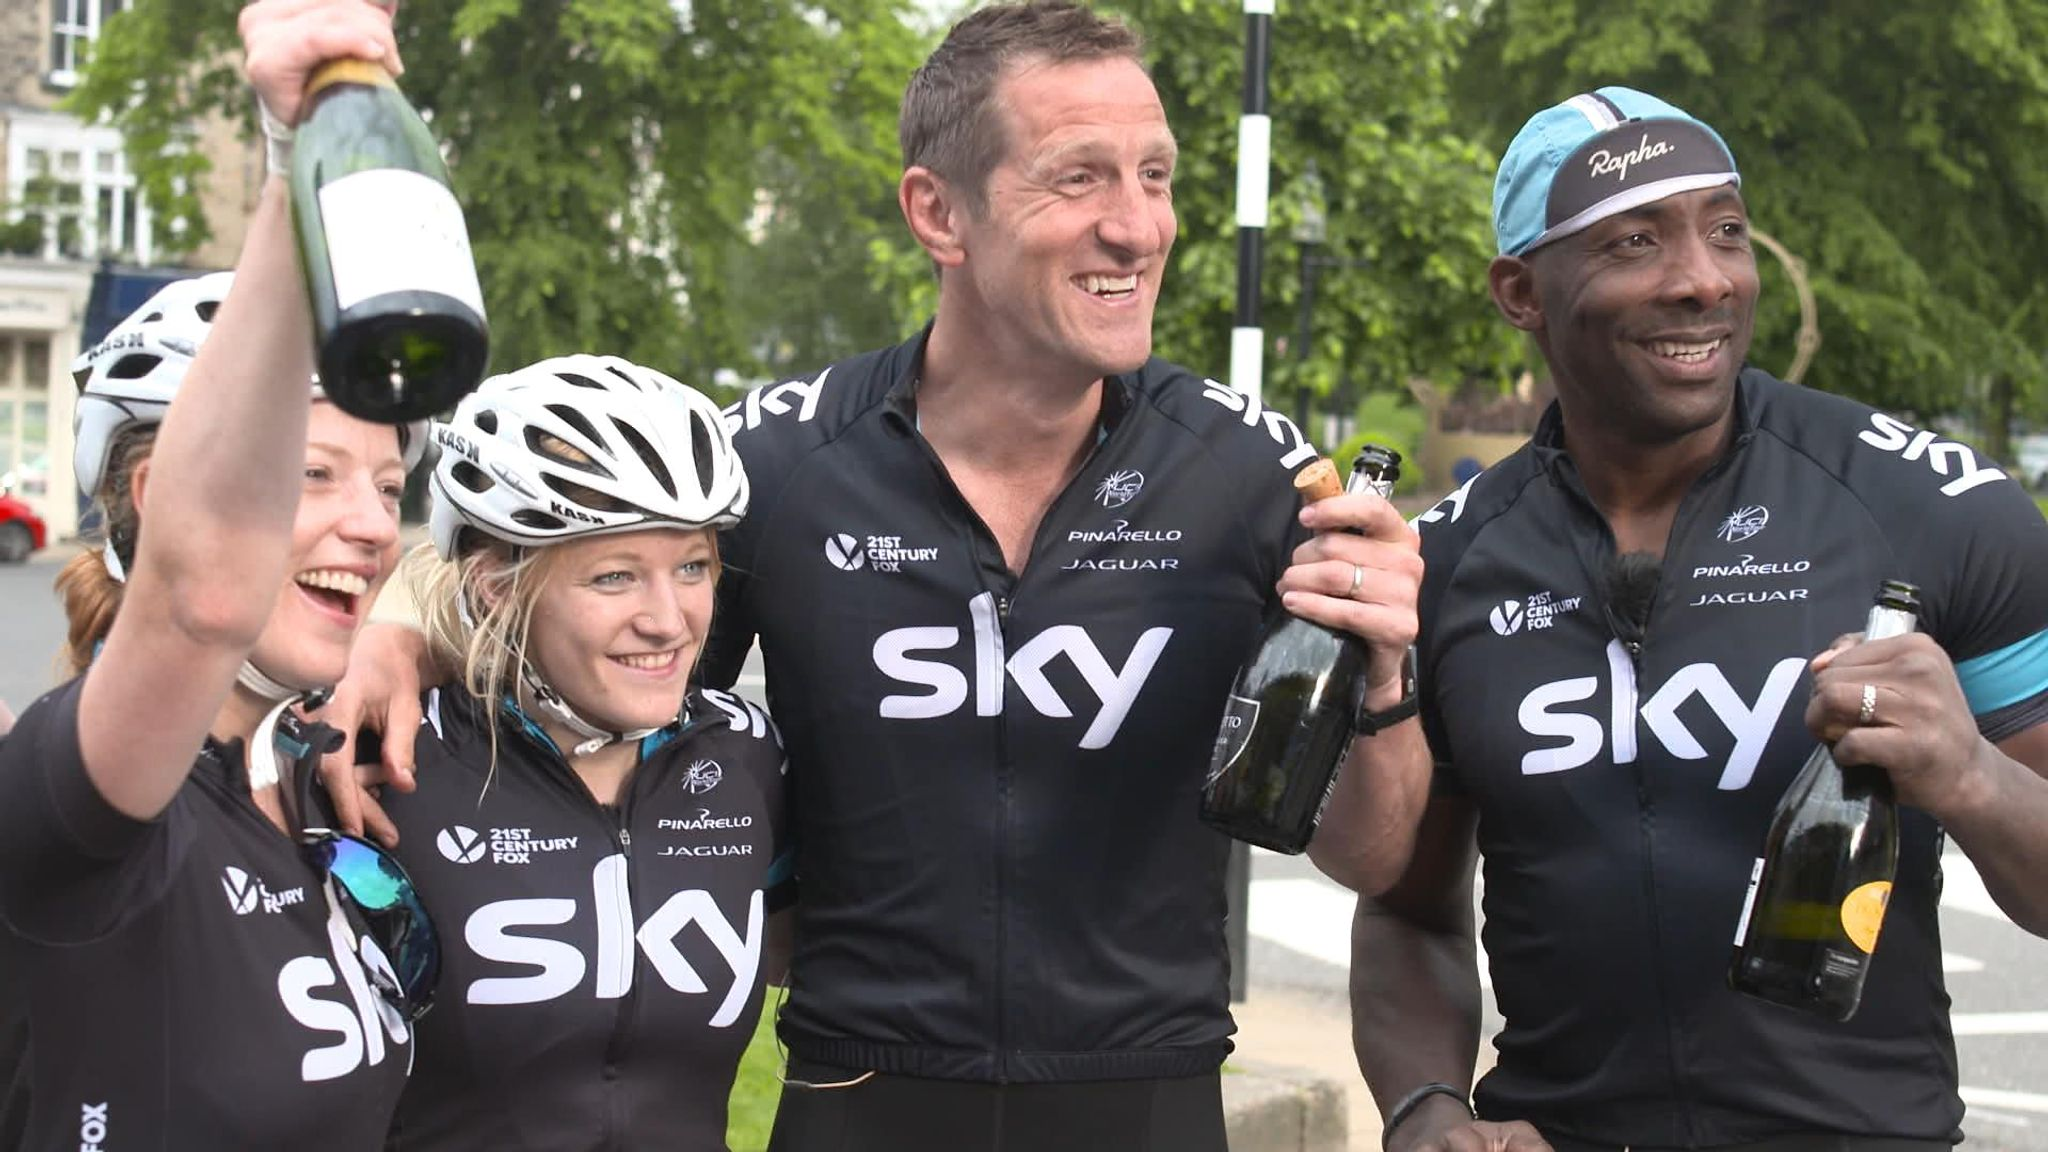 Riding the Dales: Sky trio reflect on their Tour de France challenge